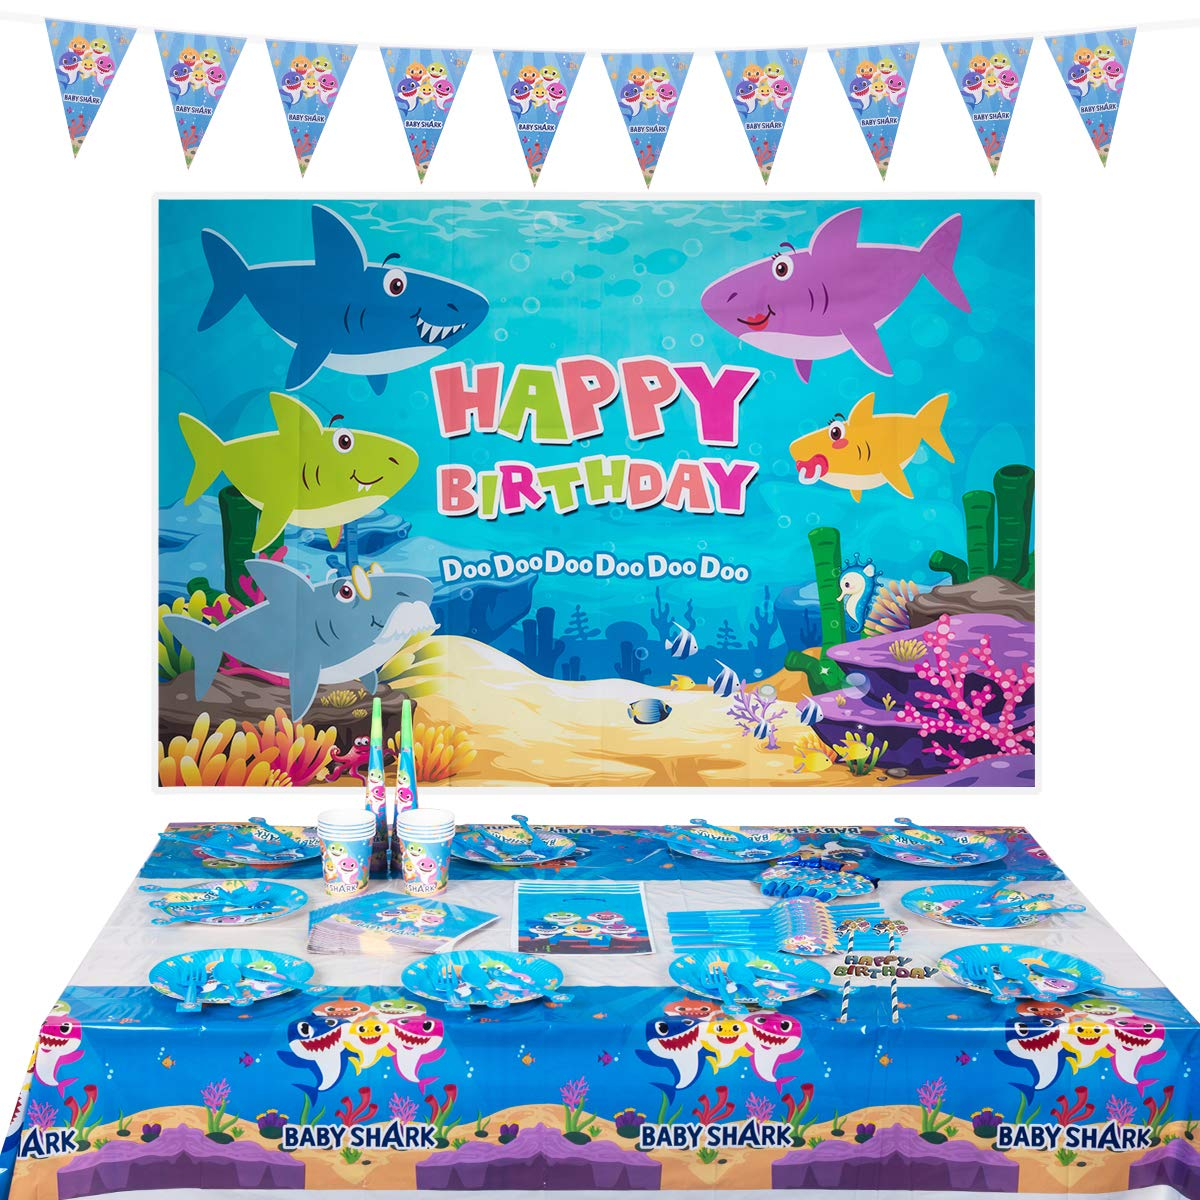 Baby Shark Party Supplies Set - 146 Pieces Shark Baby Birthday Decoration - Shark Party Underwater Backdrop Tableware Cake Topper Paper Hat Gift Bag and Banner,Children Carnival Party Supplies Decoration - Serves 10 Guest